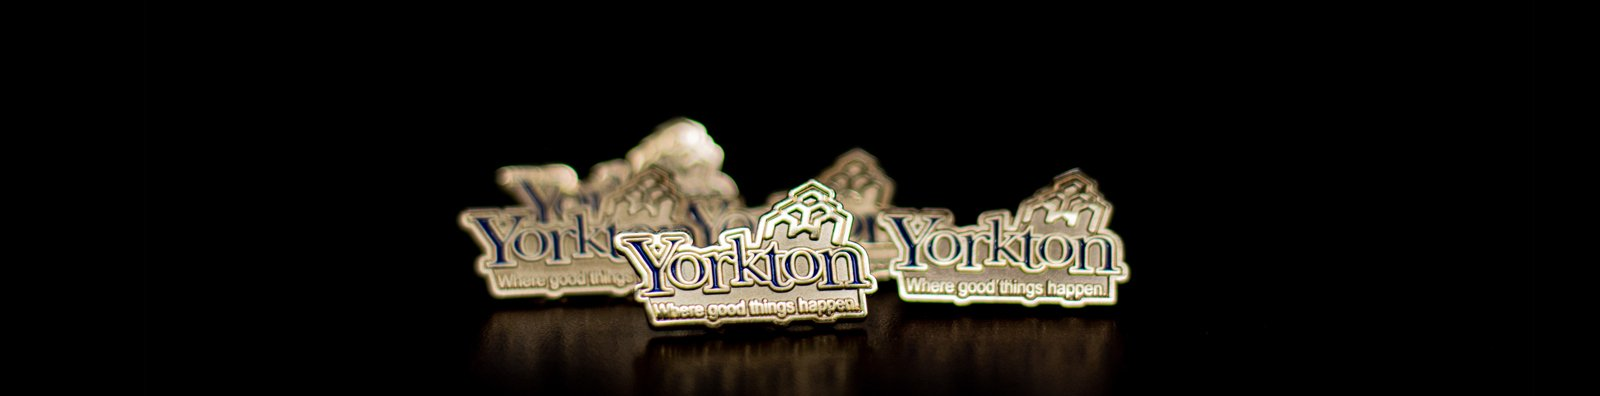 lapel pins for the City of Yorkton